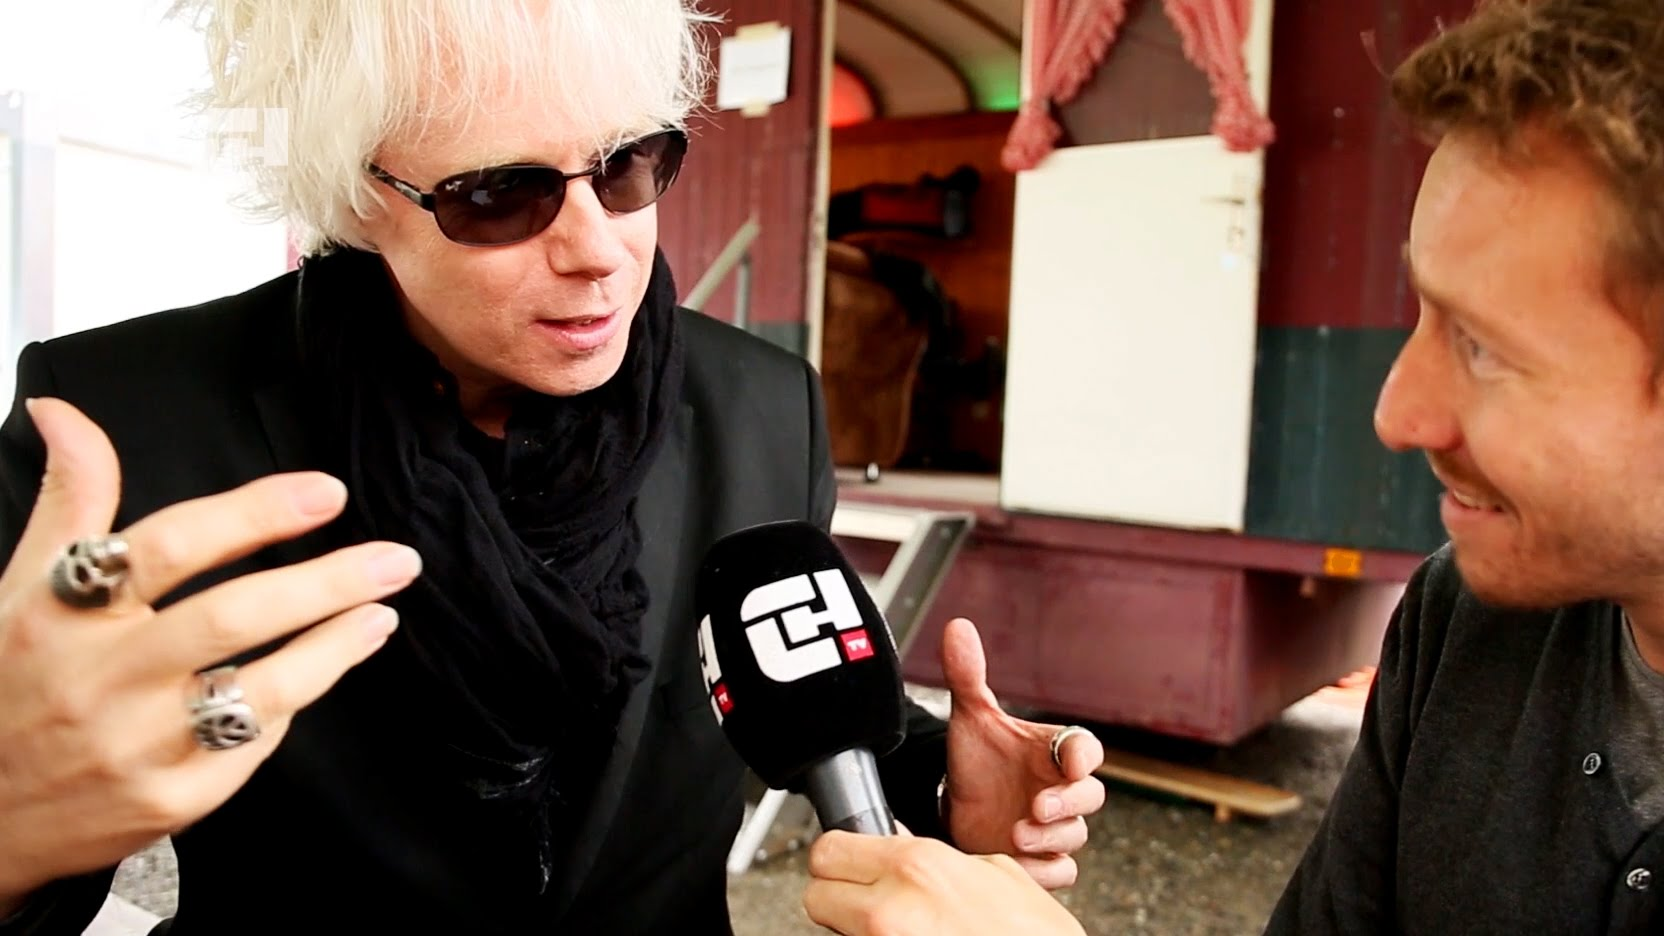 The Beauty Of Gemina Interview - Soundcircle Festival - CHTV Openair Season 2014